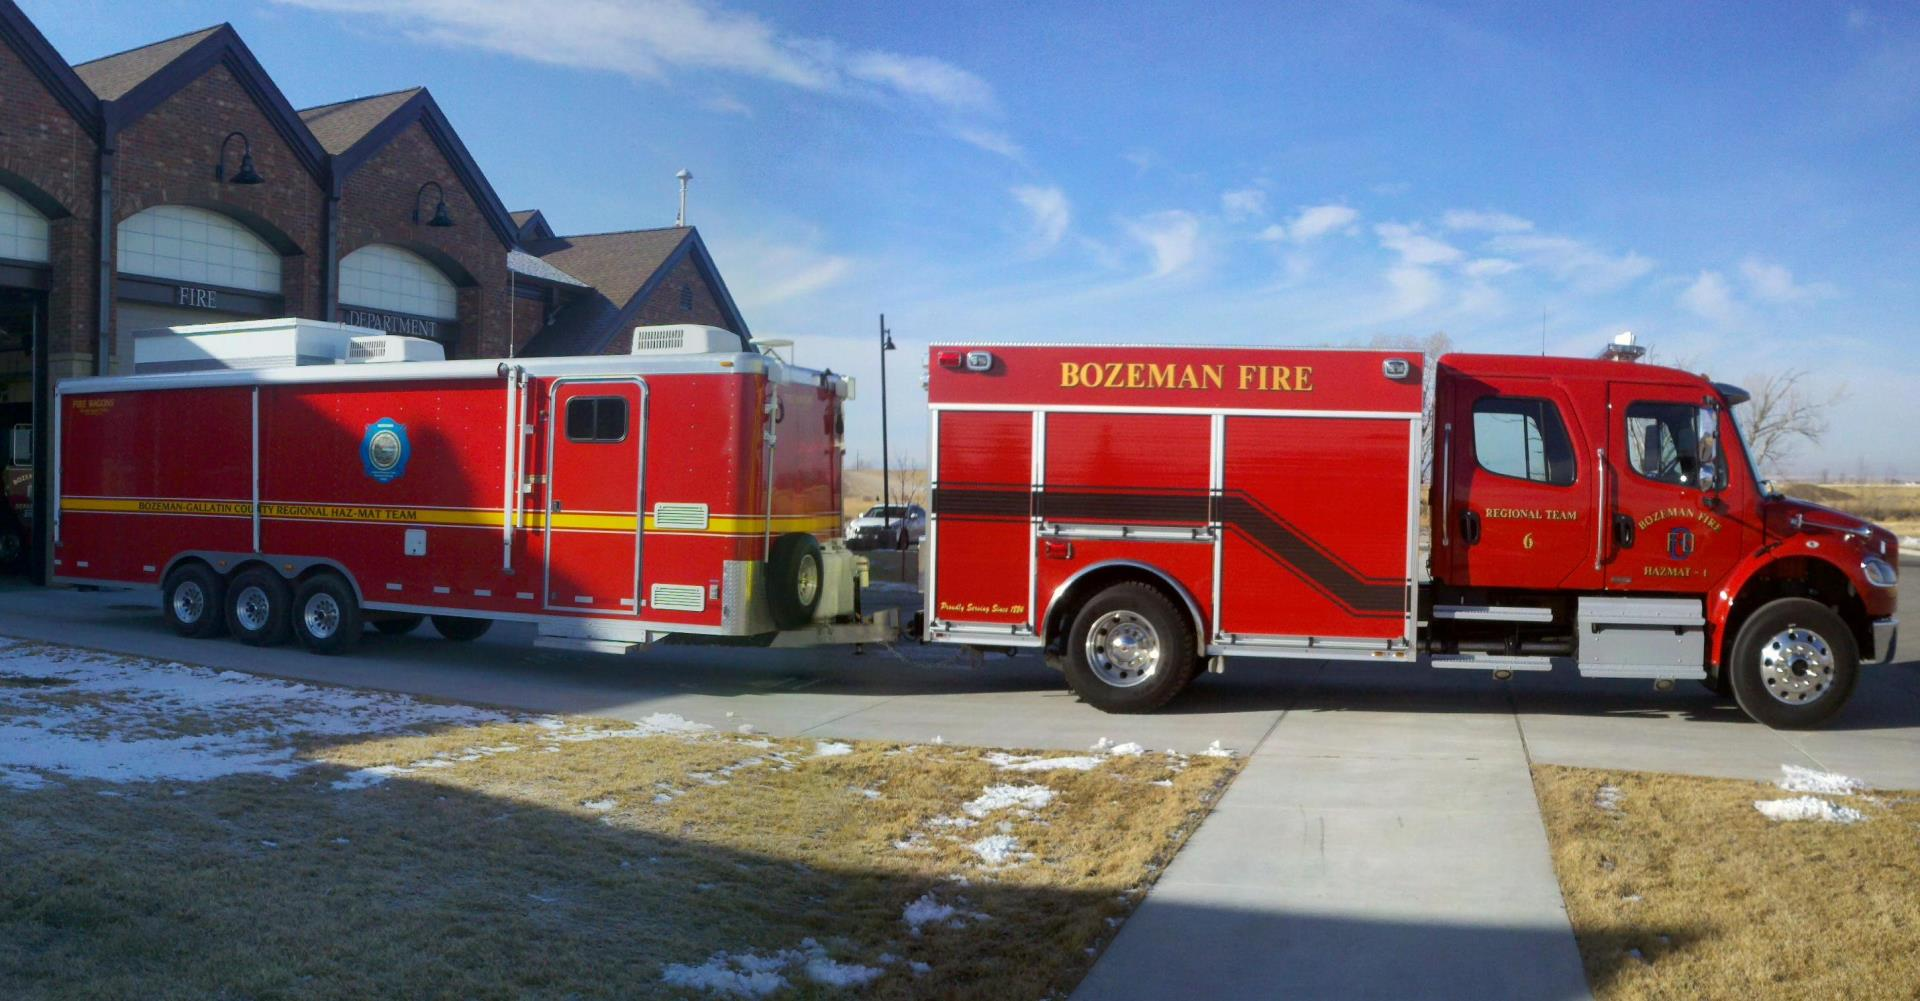 Pictured below is the Bozeman Fire Team 6 Haz Mat 1 and Response Trailer.